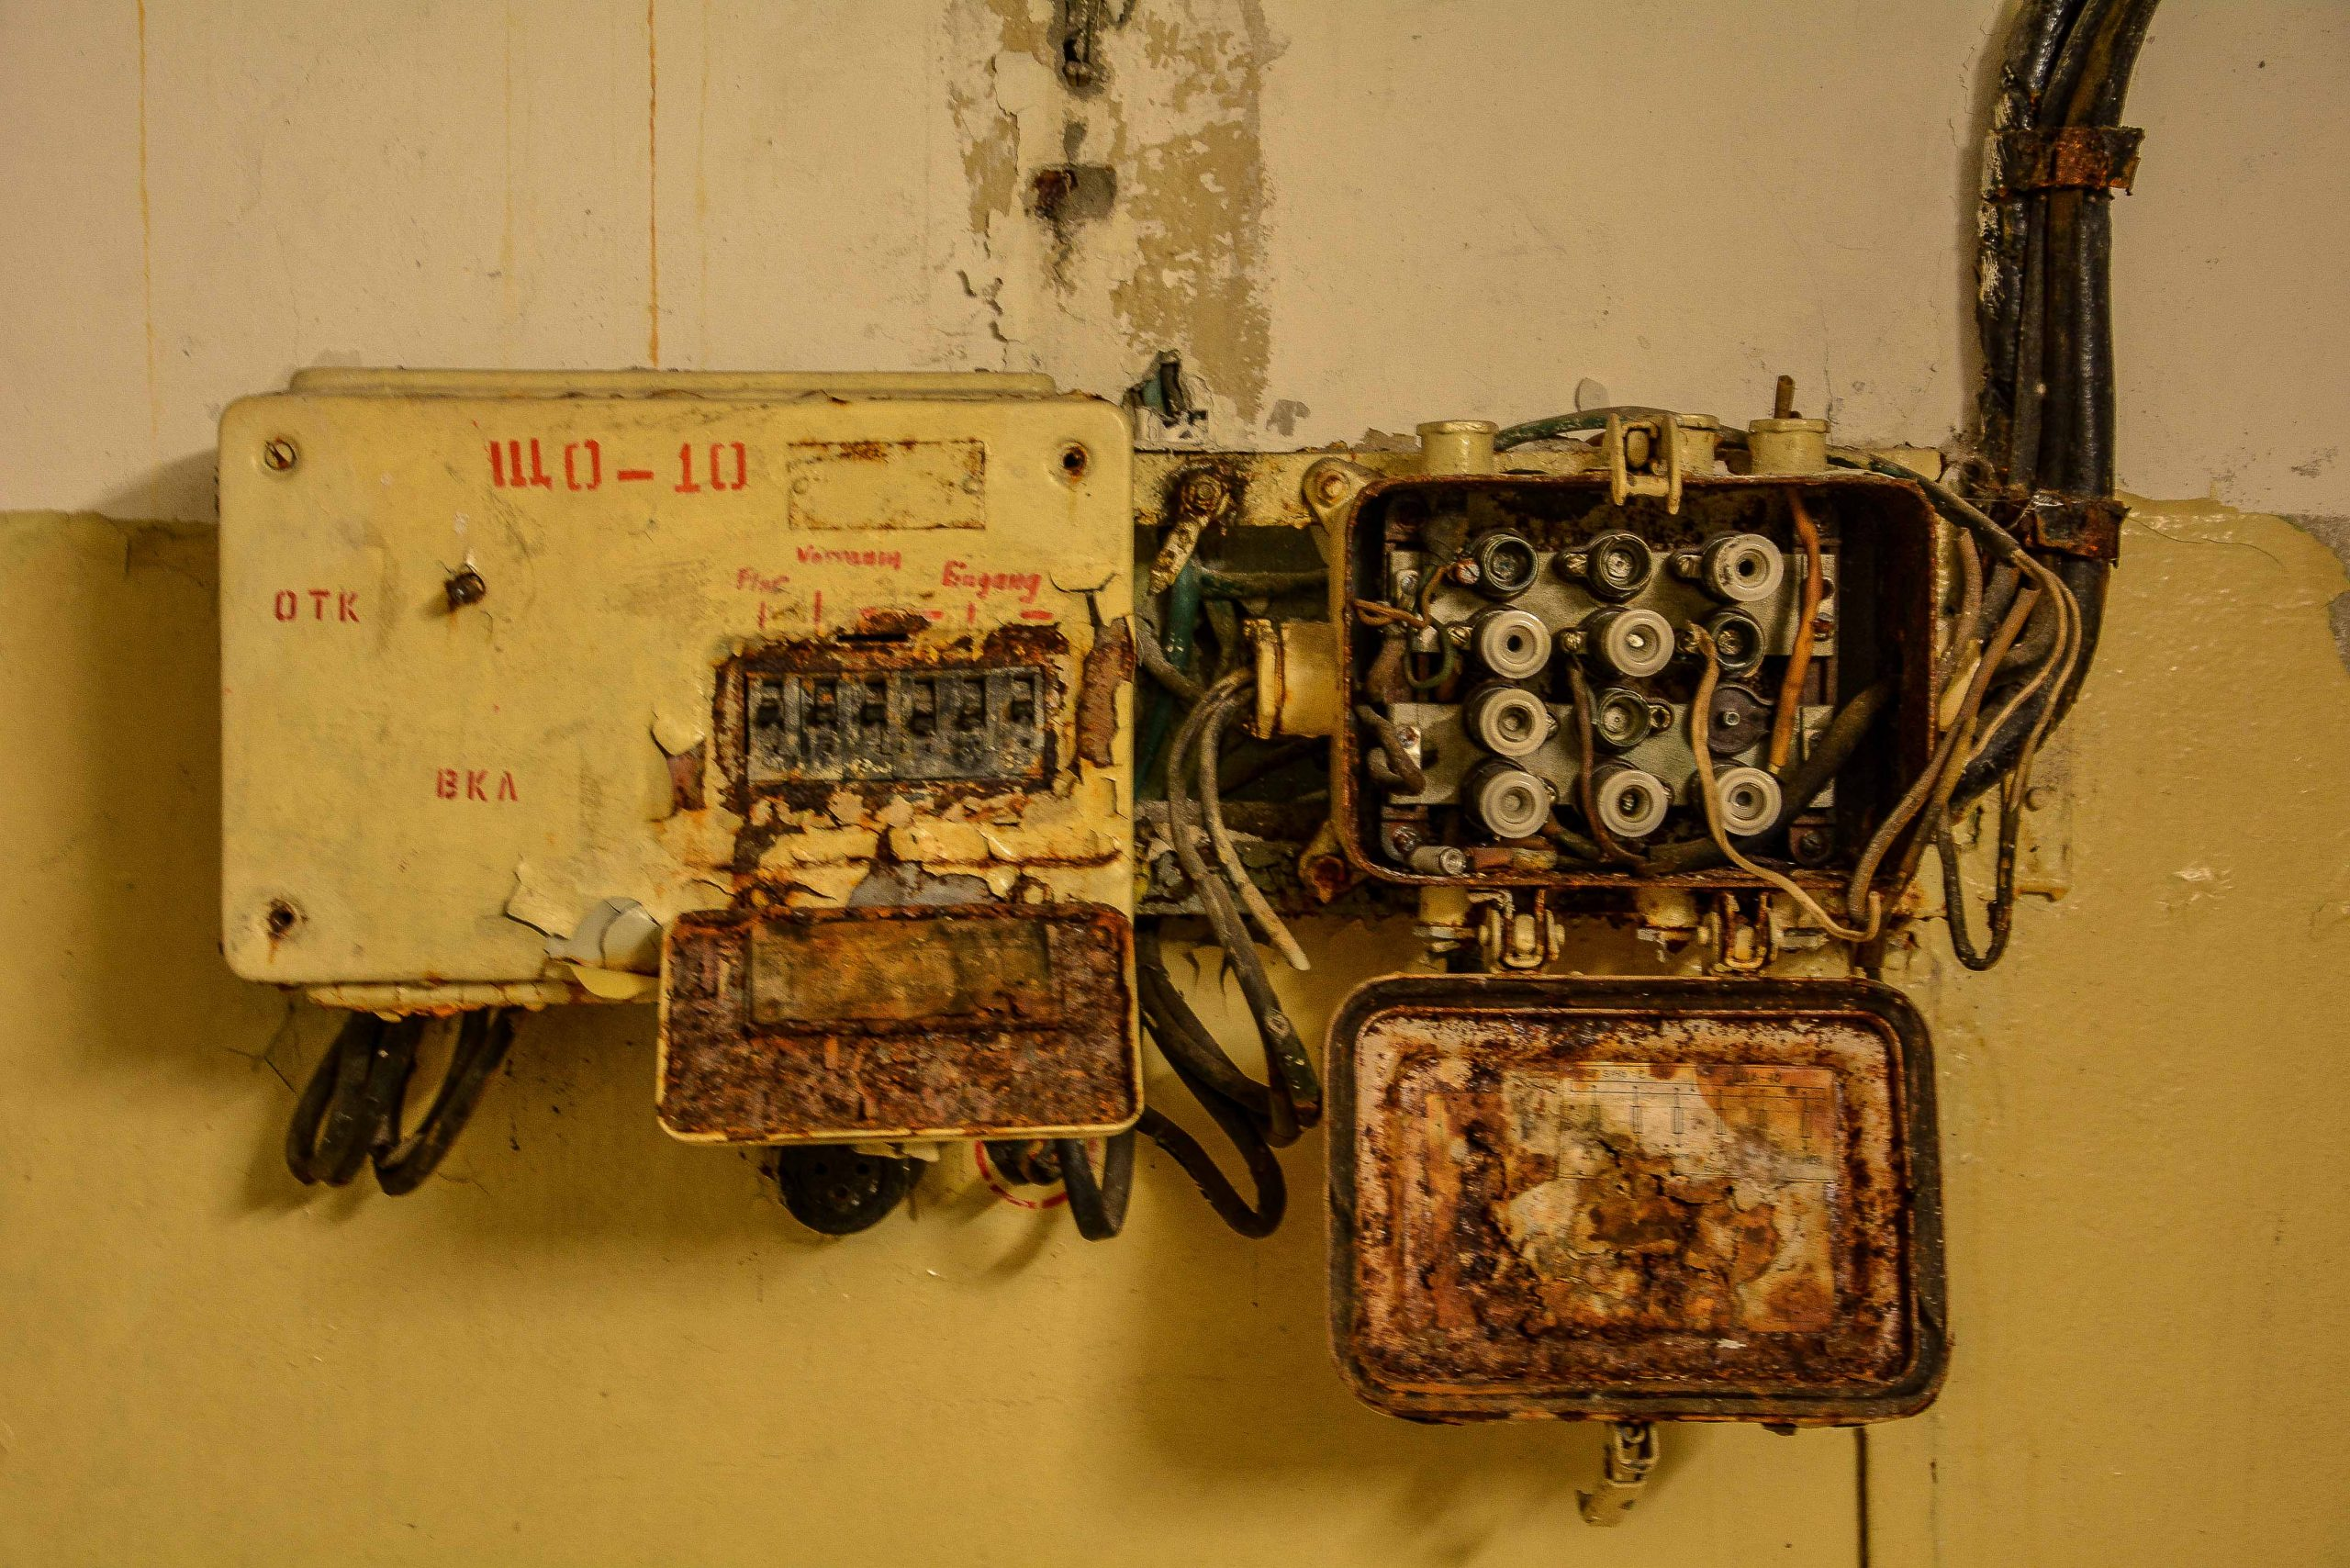 soviet fusebox bunker zeppelin amt 500 maybach bunker ranet wehrmacht sowjet soviet military zossen brandenburg germany lost palces urbex abandoned